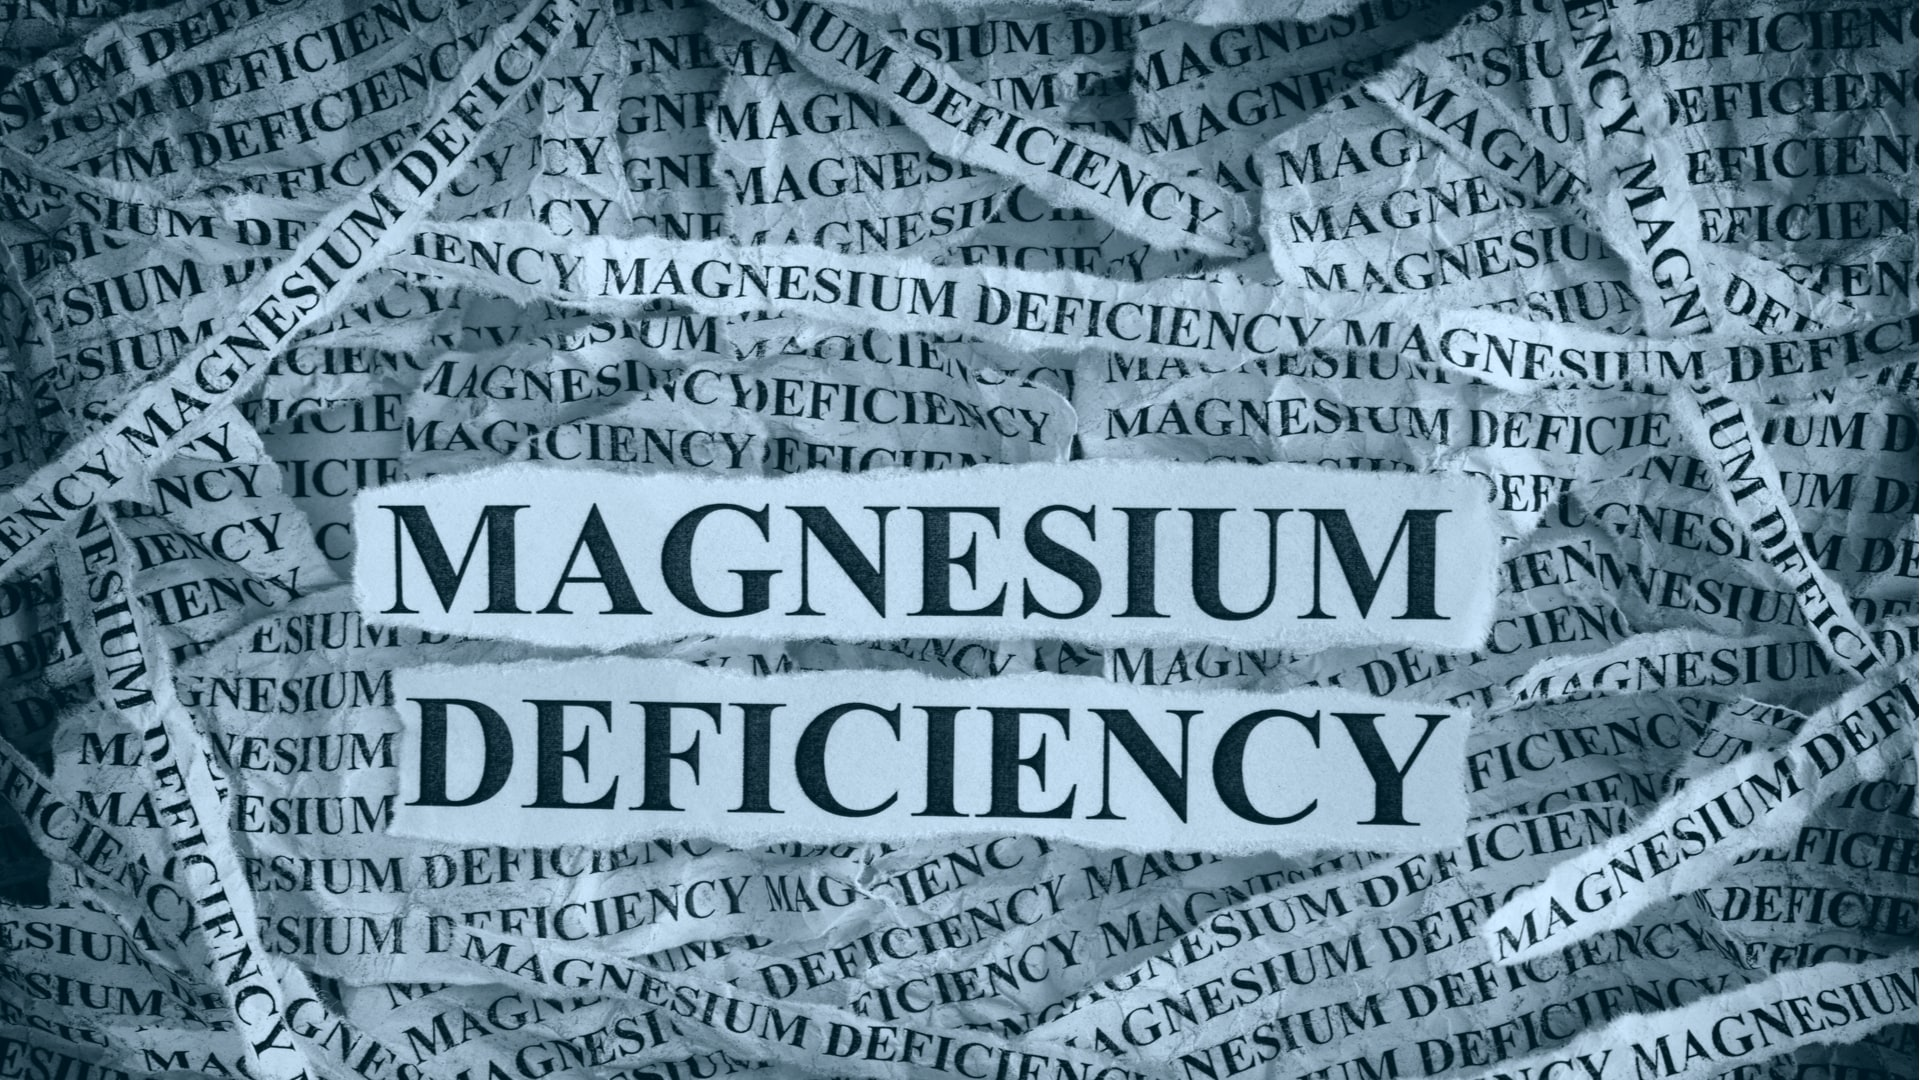 Can Magnesium Supplements Help With Depression?